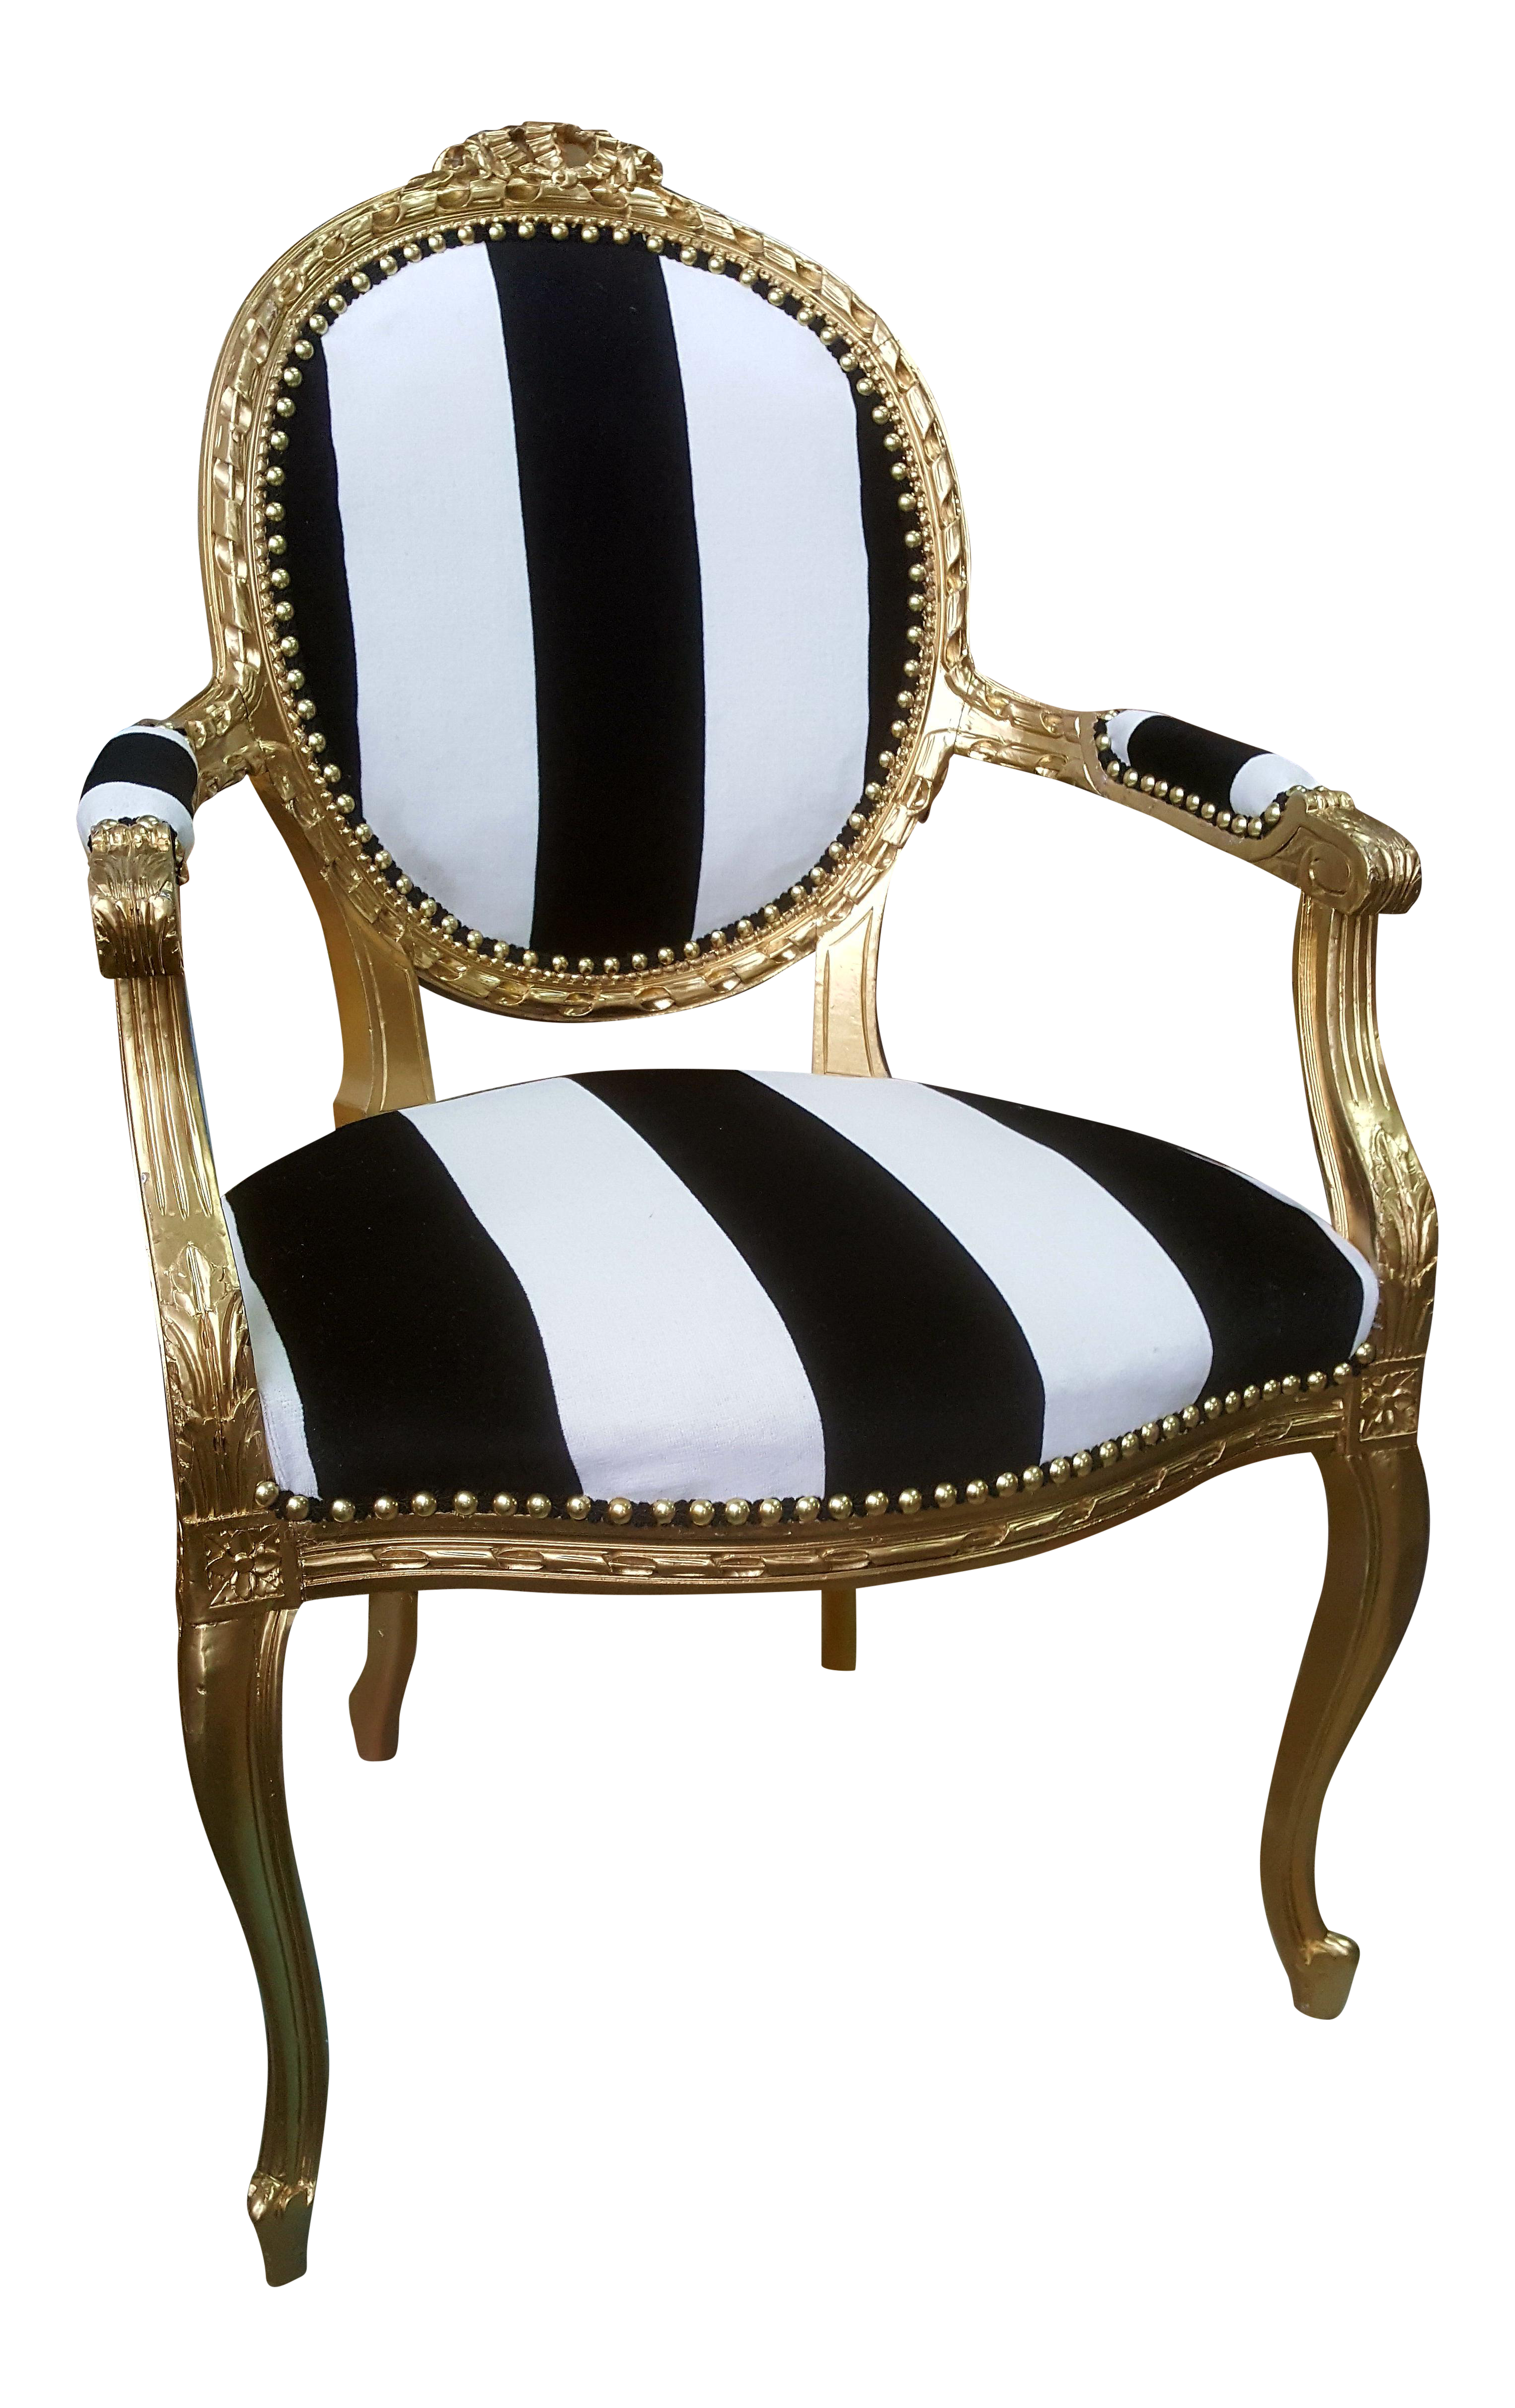 Antique Louis Xvi Chair In Gold Leaf With Black And White